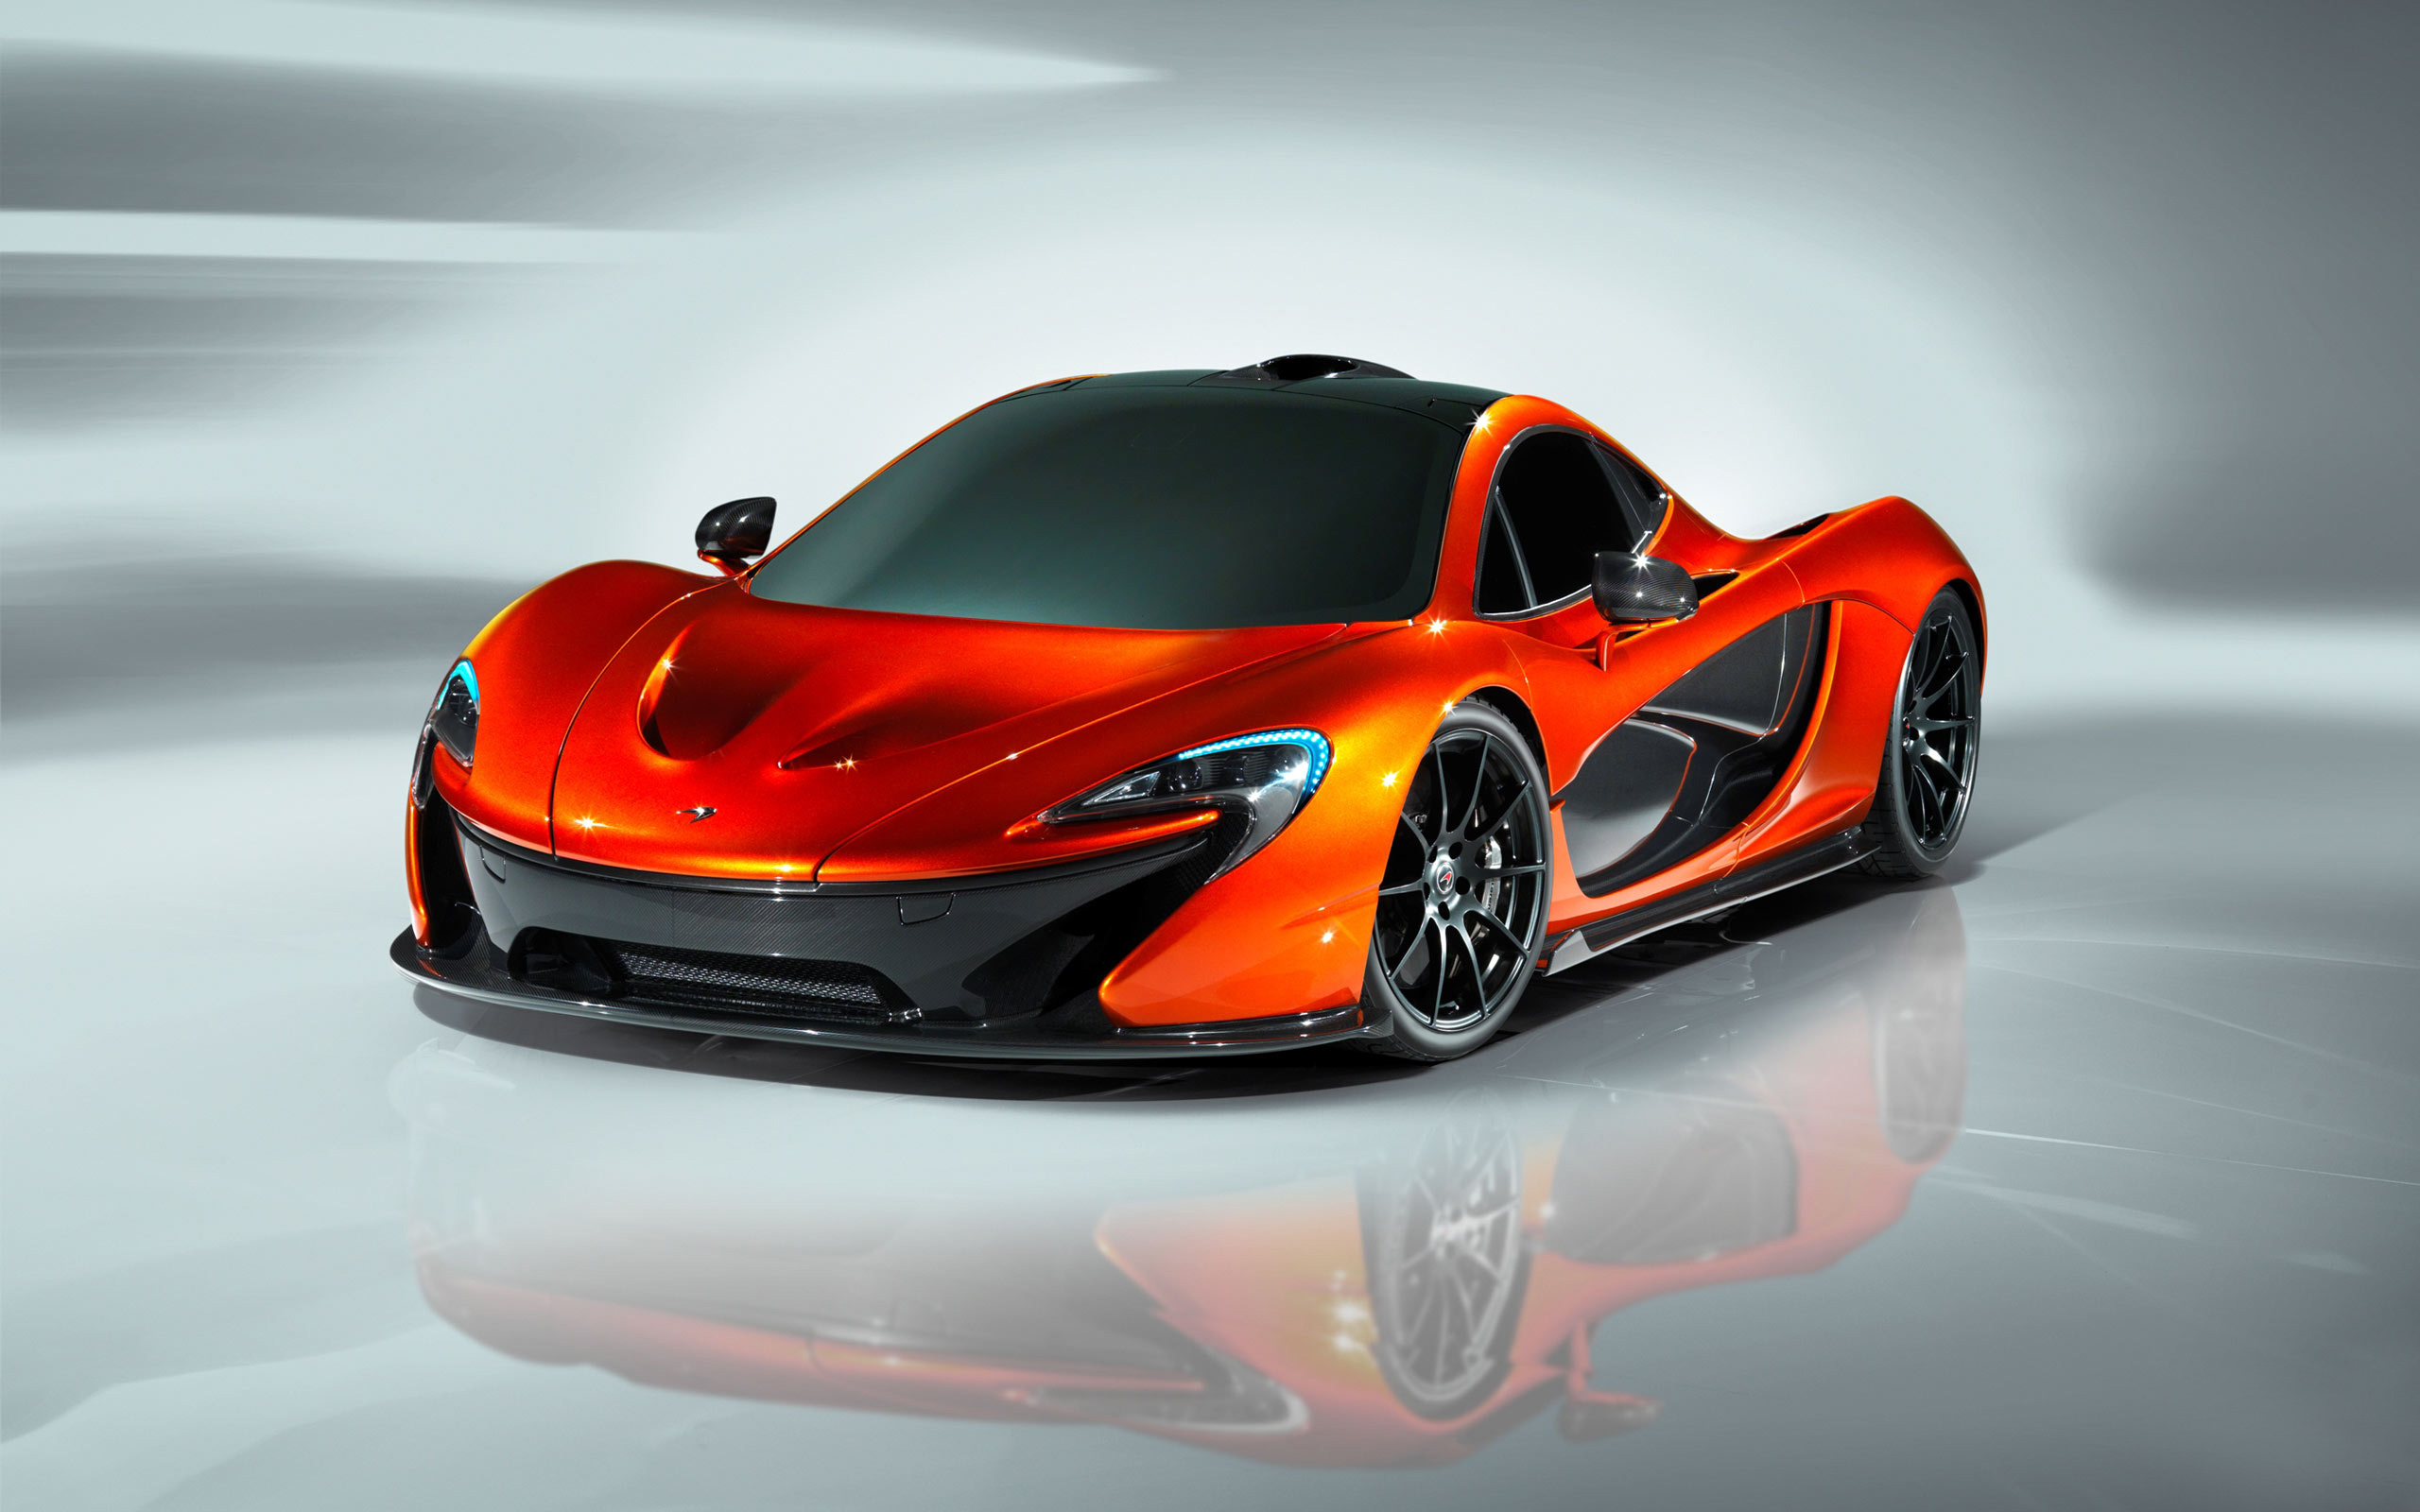 2012 mclaren p1 concept wallpaper | hd car wallpapers | id #3049